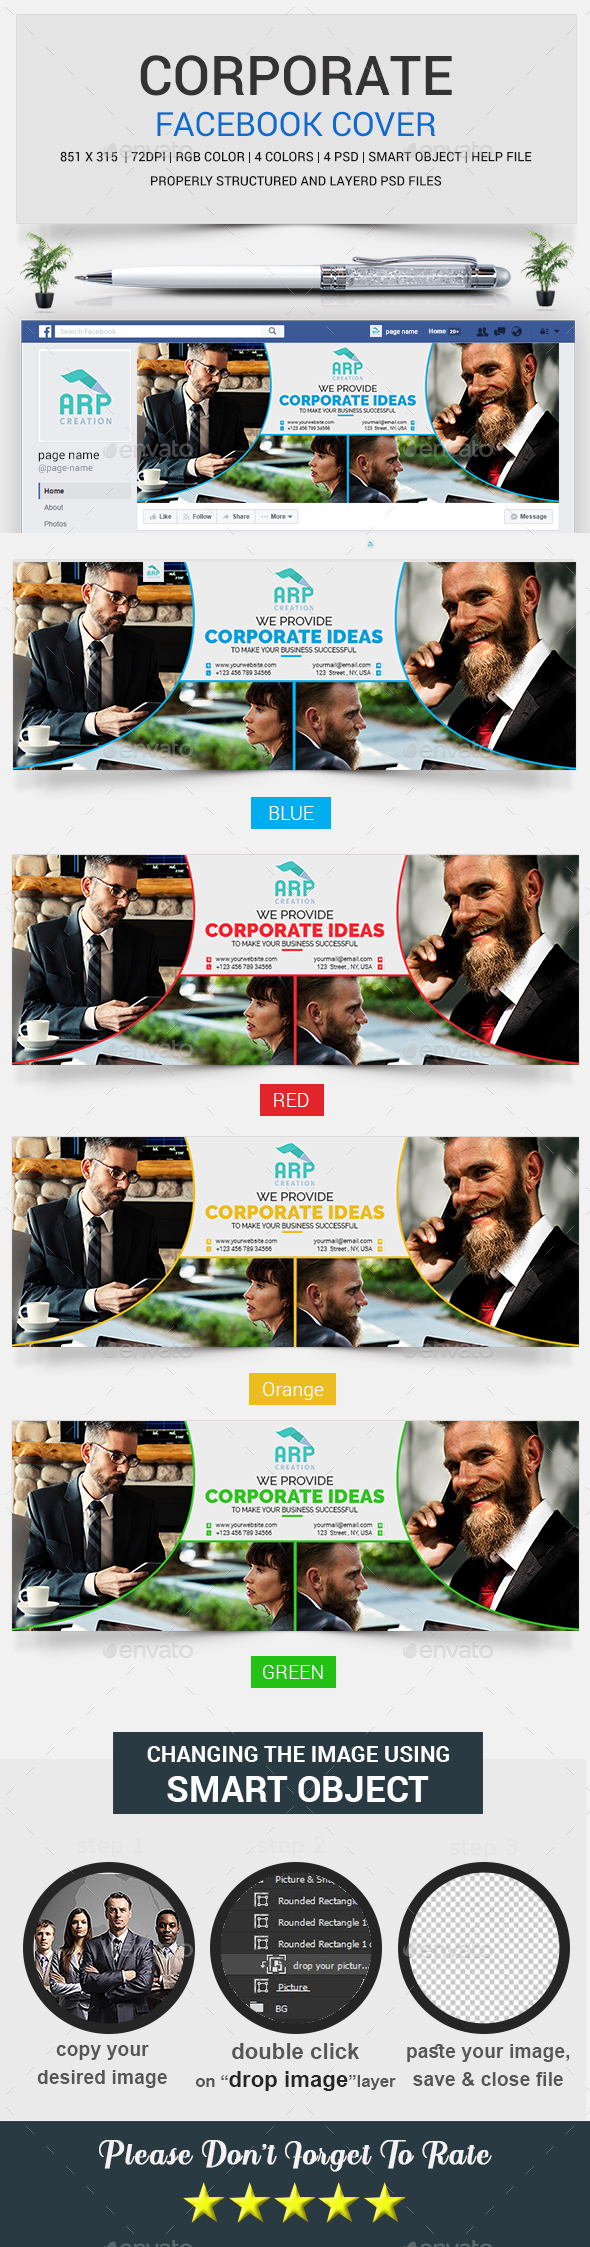 Corporate FB Timeline Cover - Facebook Timeline Covers Social Media